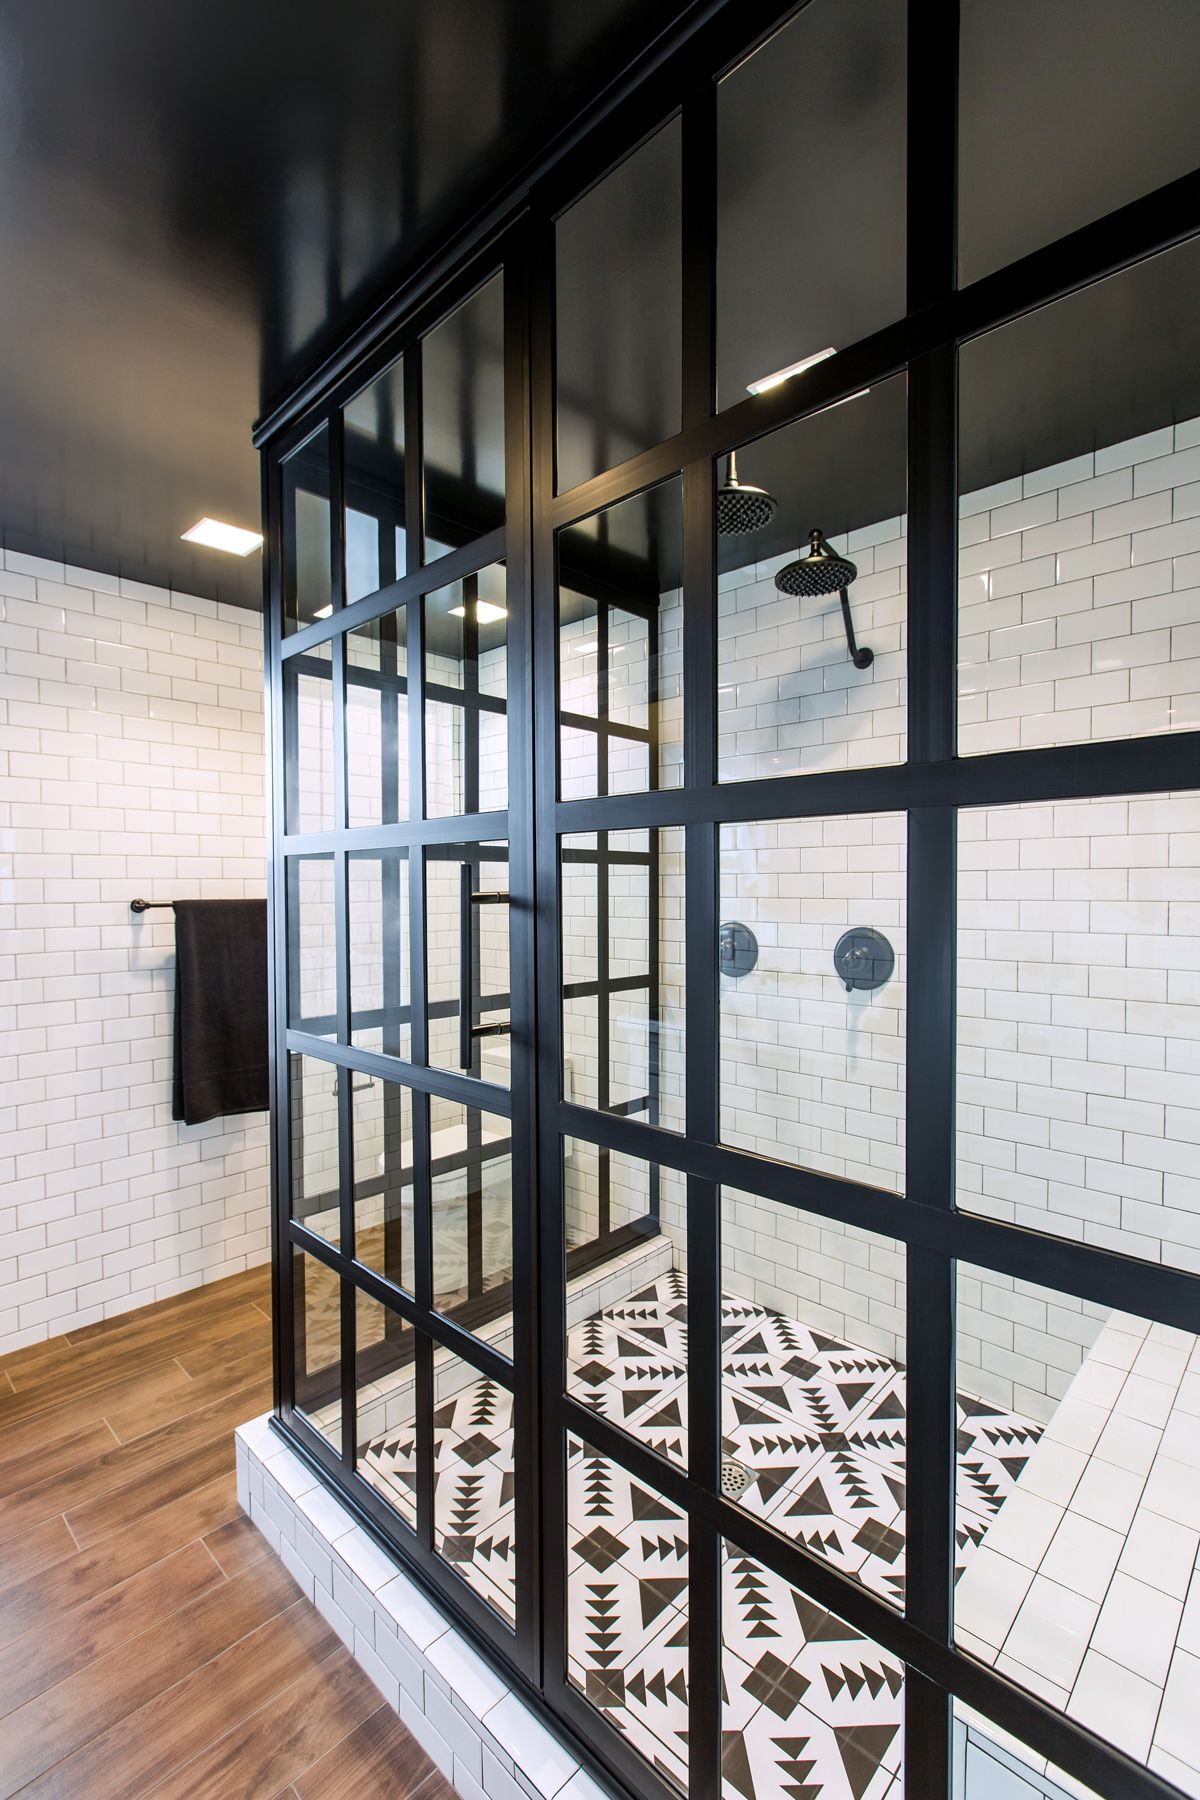 Take A Look At The Best Crittall Shower Designs That Will Give Your Bathroom An Instant Impact Modern Shower Doors Coastal Shower Doors Shower Doors